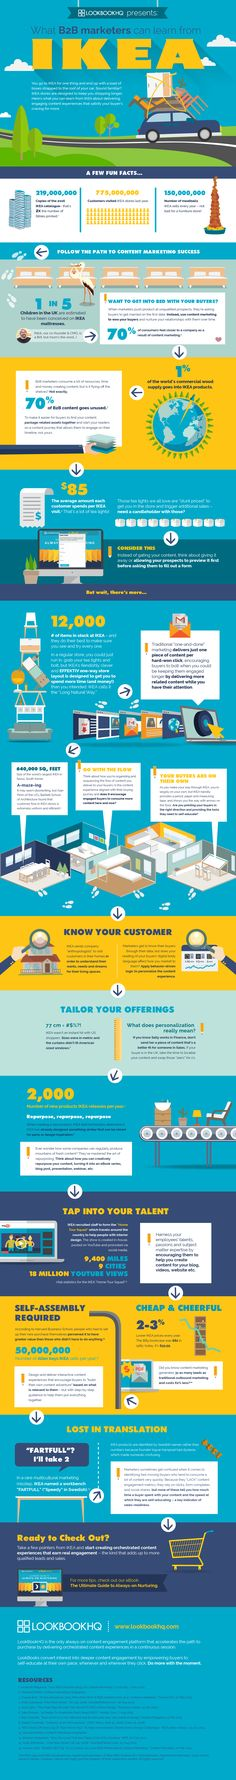 [Infographic] What B2B Marketers Can Learn from IKEA